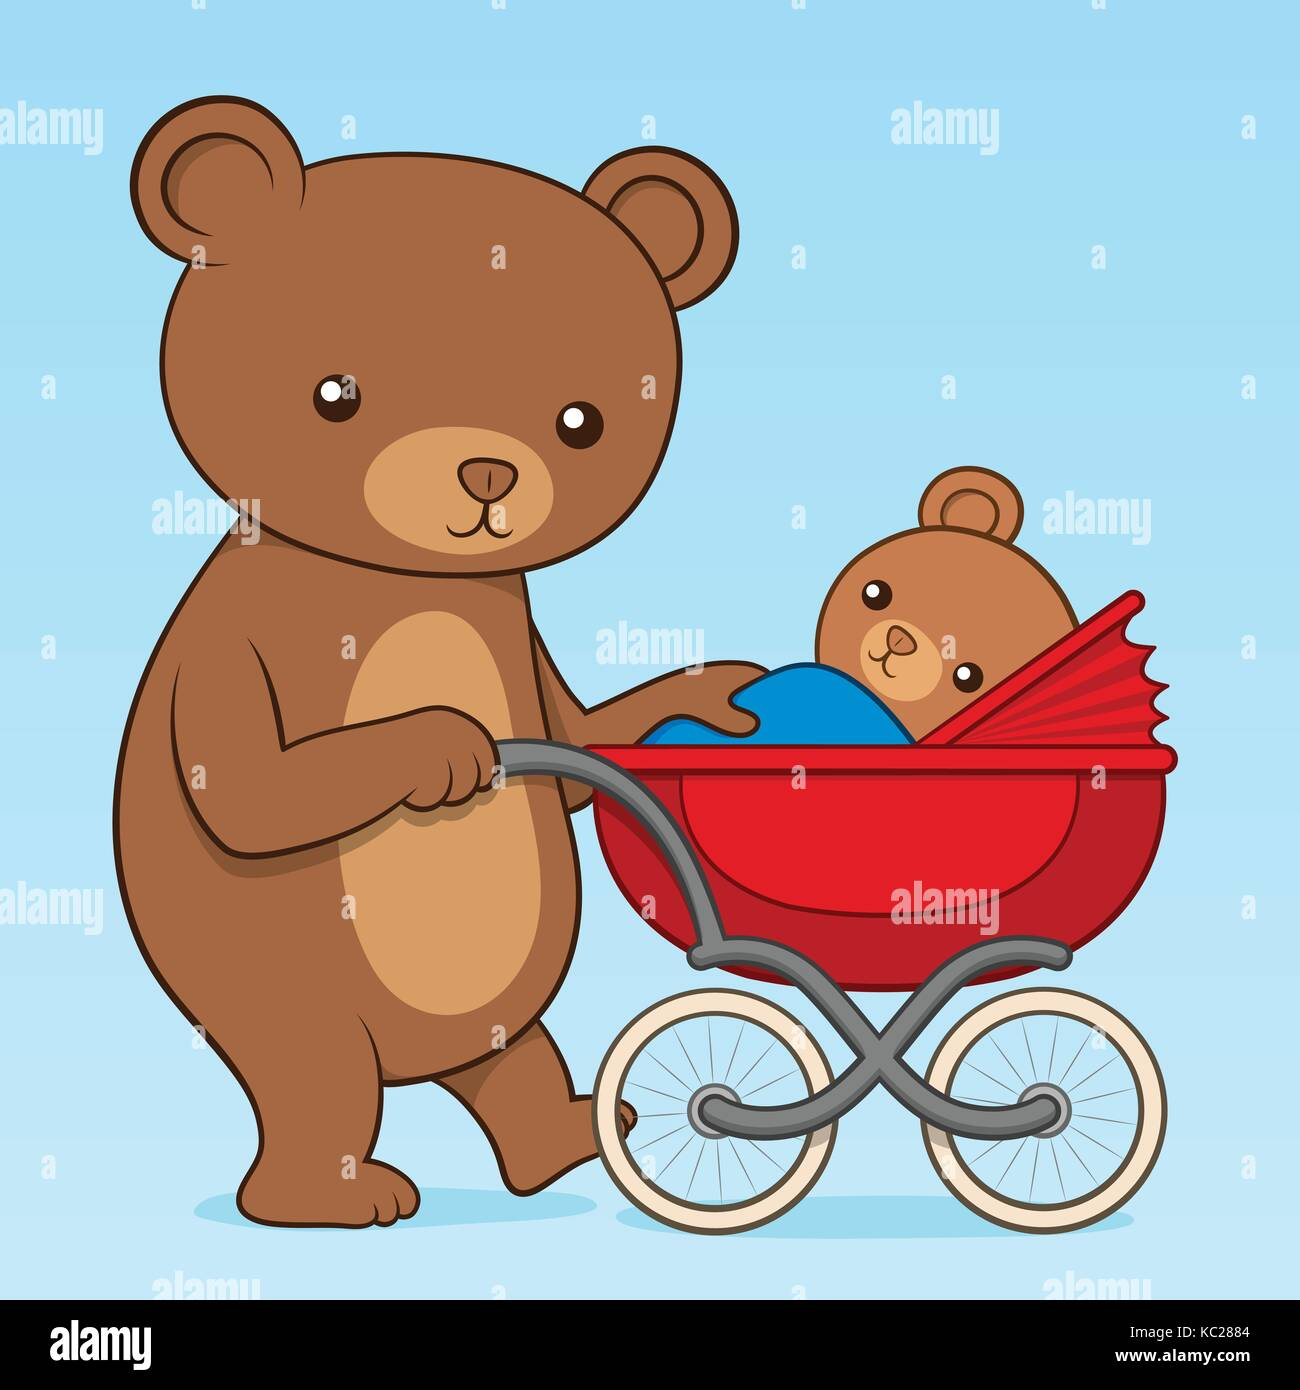 Mother Bear Pushing Her Cute Little Cub In A Colorful Red Buggy Or Pram Vector Cartoon Illustration As She Takes It For Family Walk Outdoors